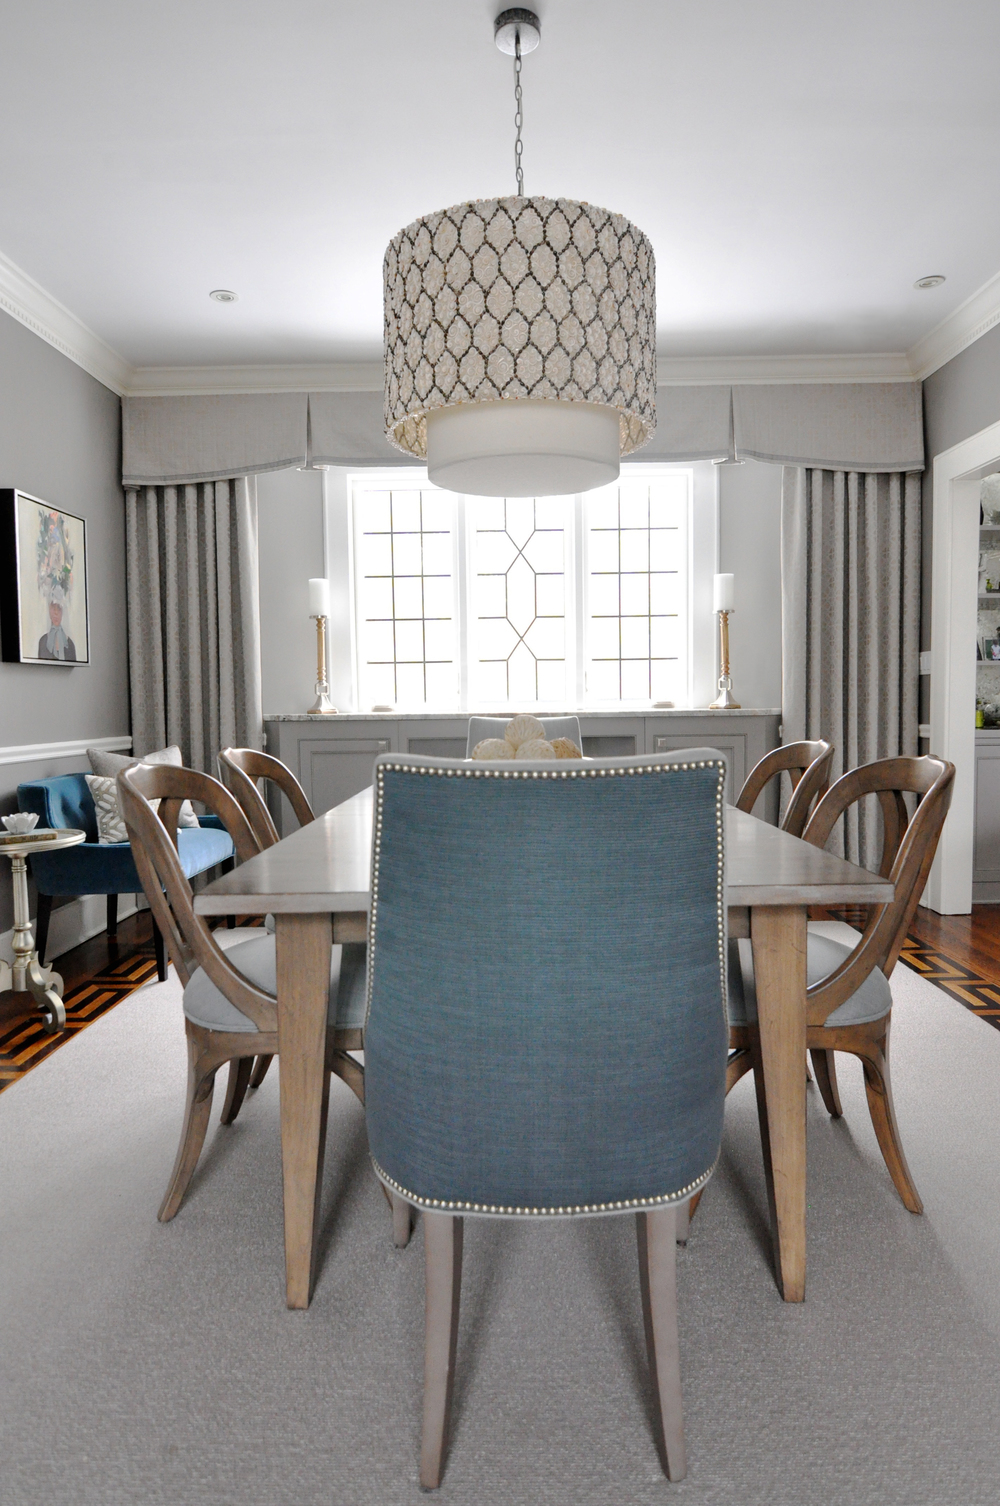 KAM DESIGN_Dining Room_Gray_Taupe_Teal_Custom Leaded Glass Casement Windows_Pollack Wool Grille Drapery_Grange Cabinet_Ottoman Empire Host Chair Fabric_Stark Invicta Rug_2015_web.jpg